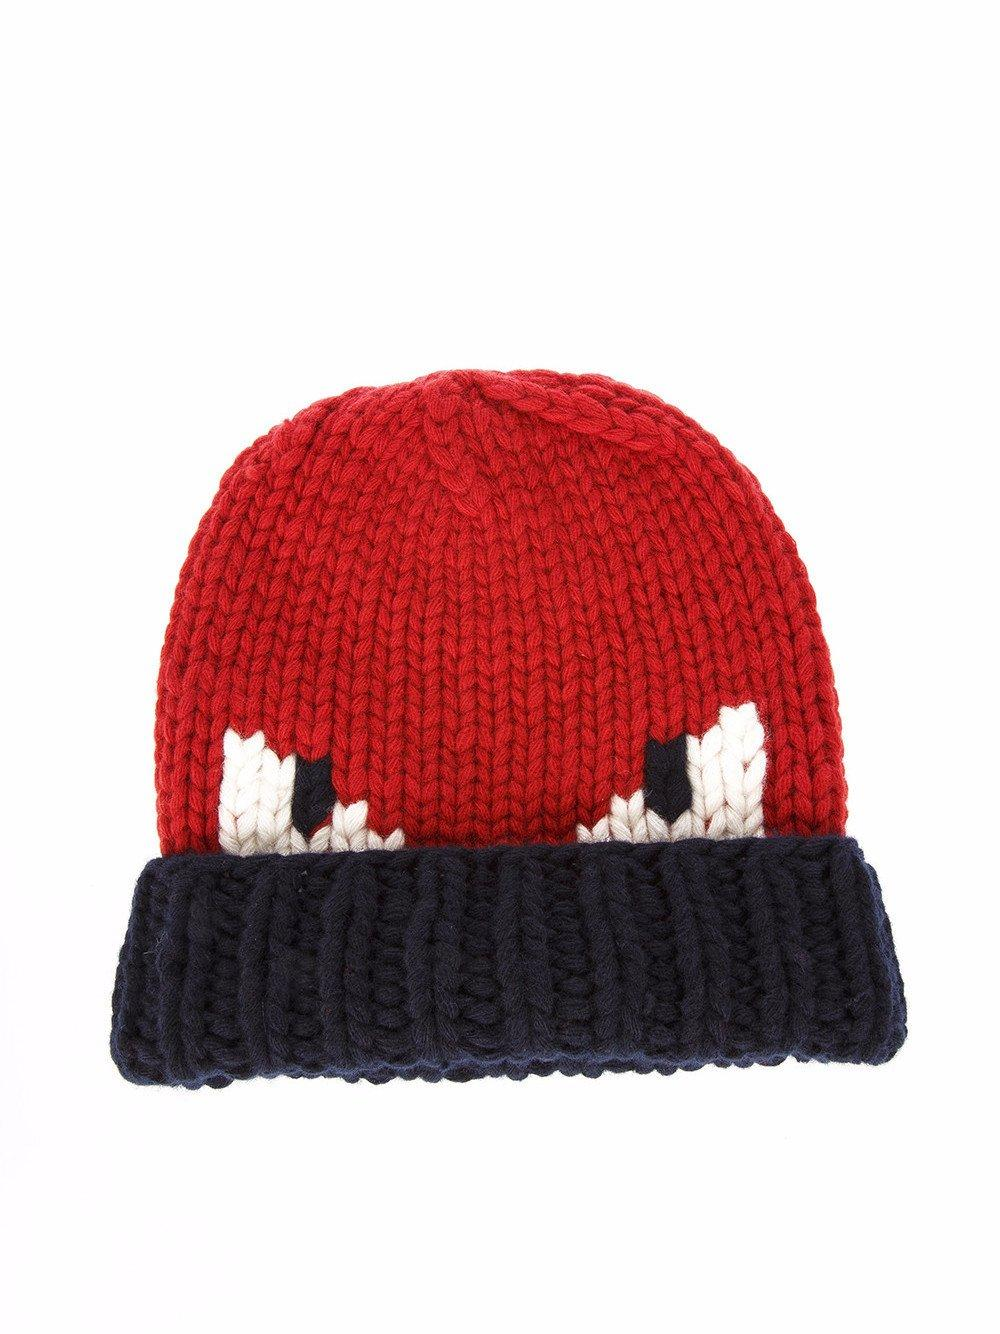 dfc60f9c10a9 Lyst - Fendi Bag Bugs Beanie in Red for Men - Save 61%